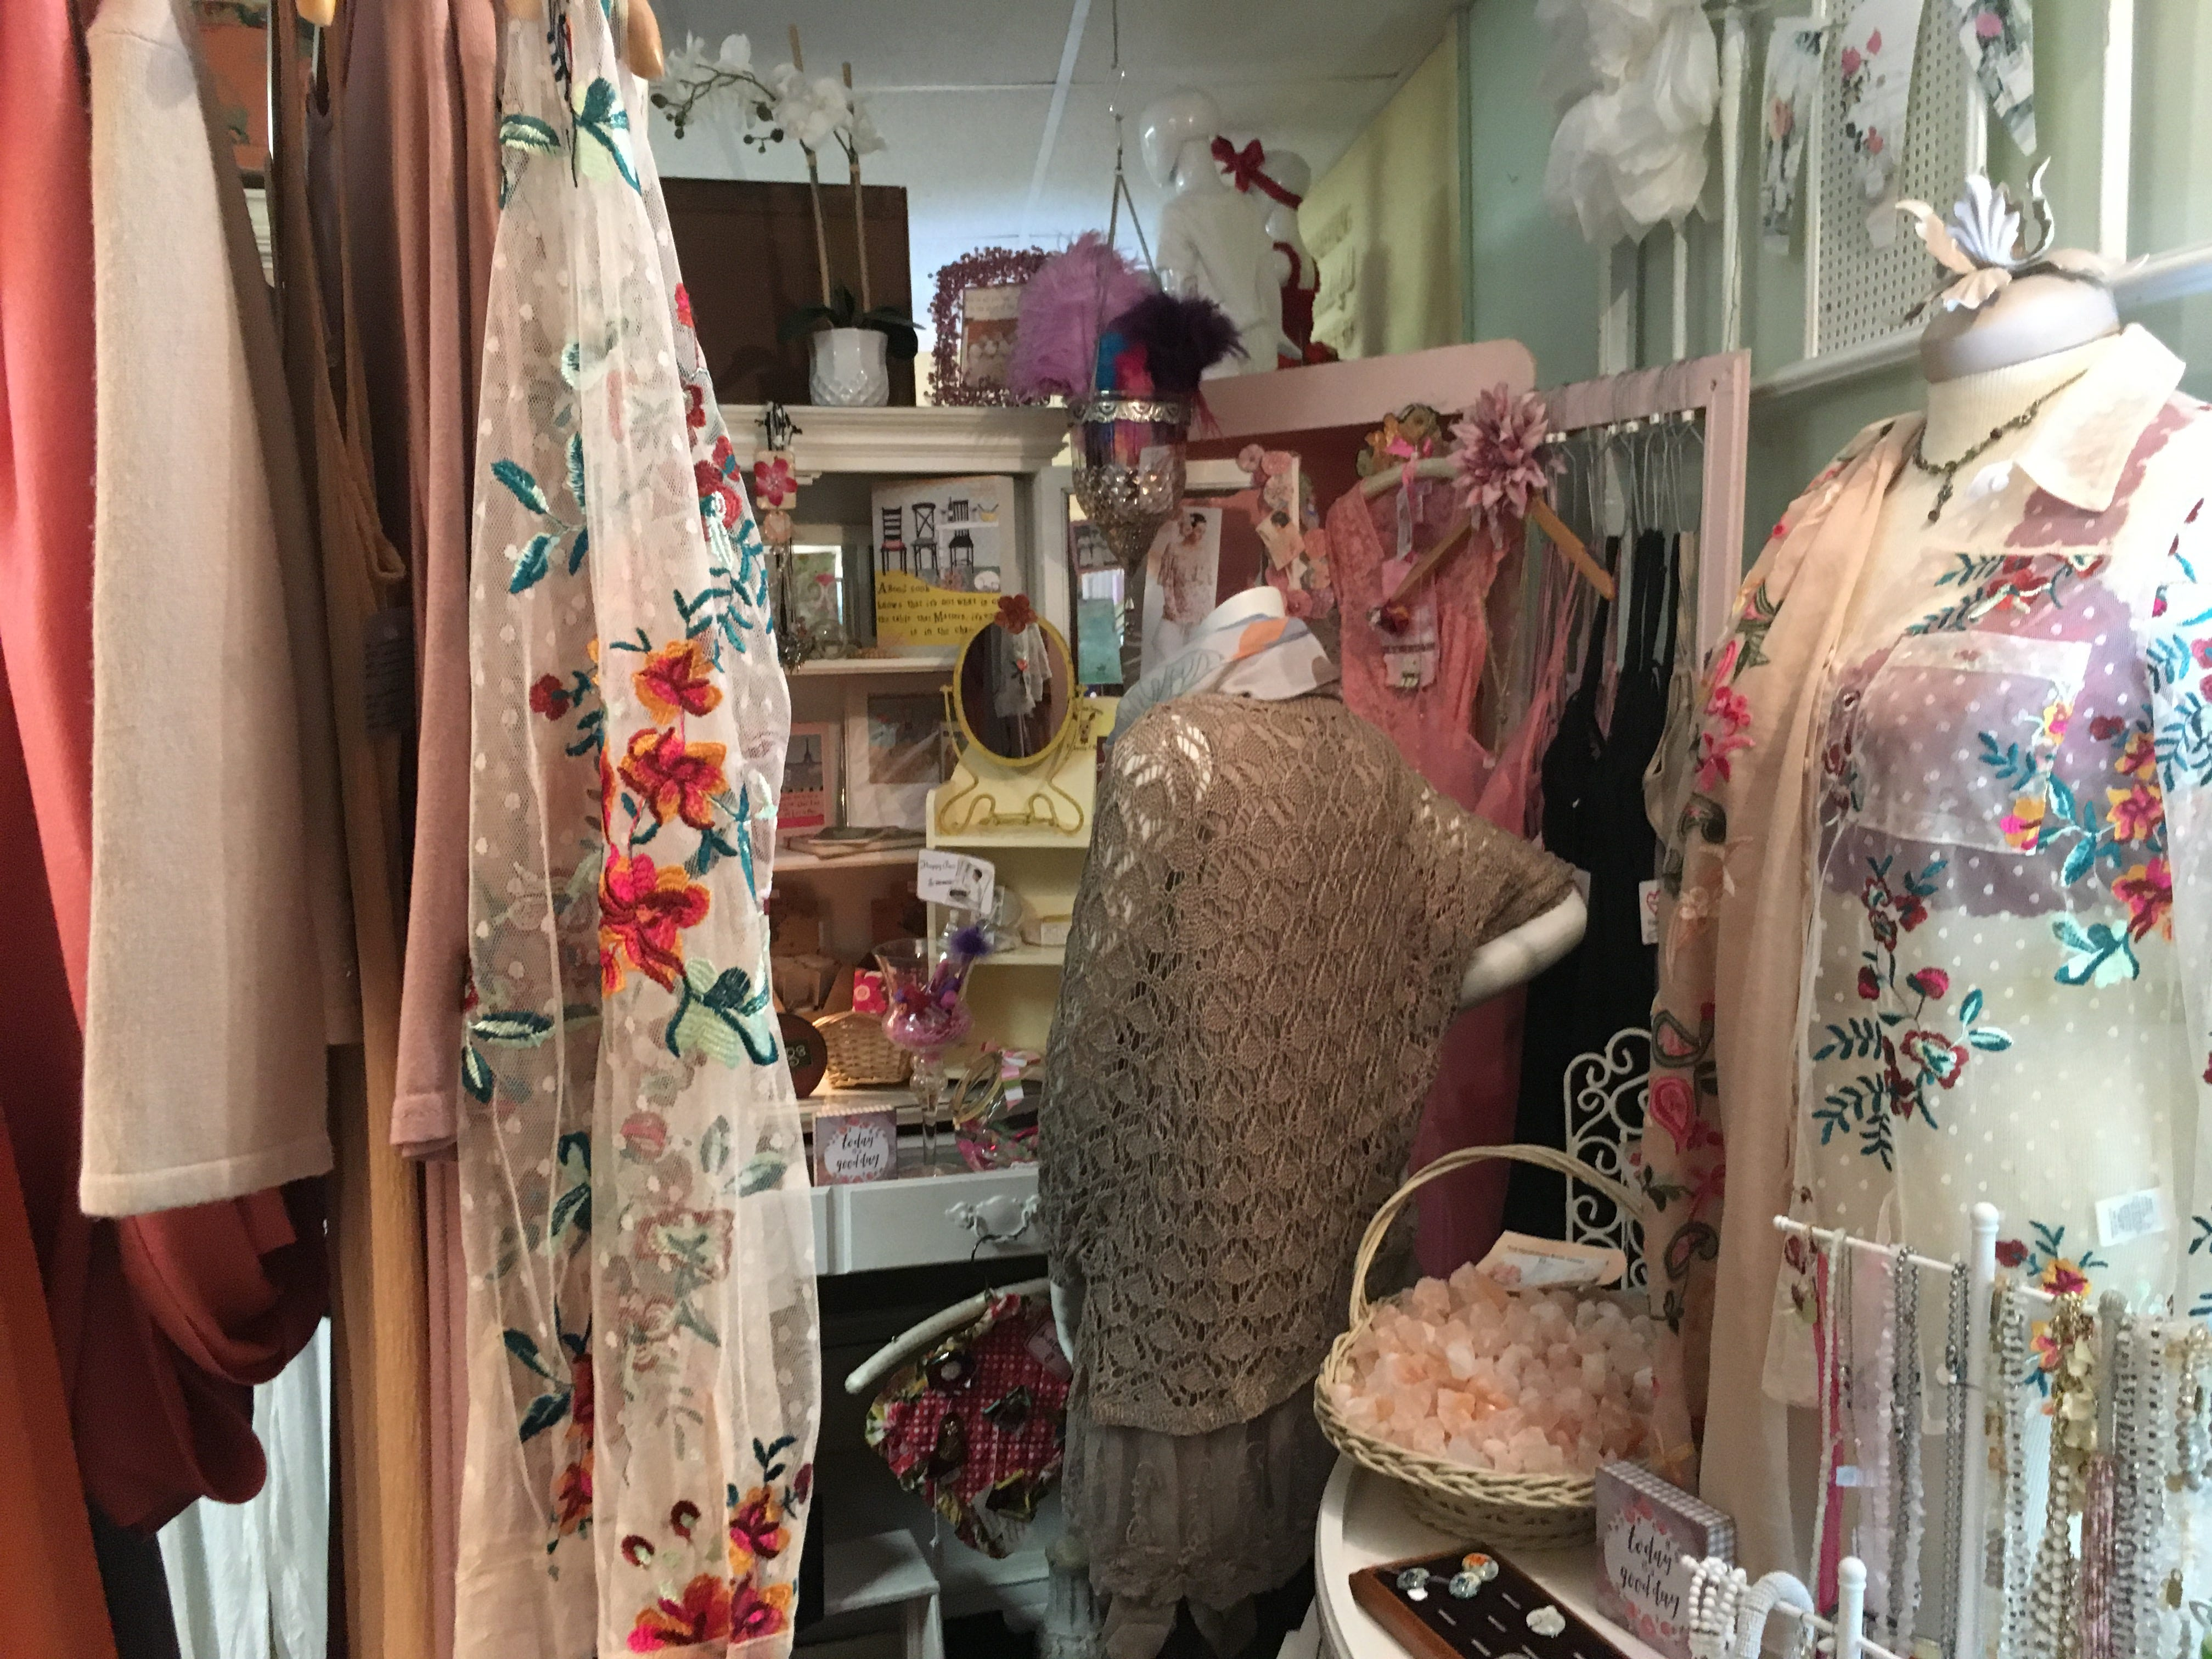 Heaven on Earth Emporium is full of treasures both vintage and new.